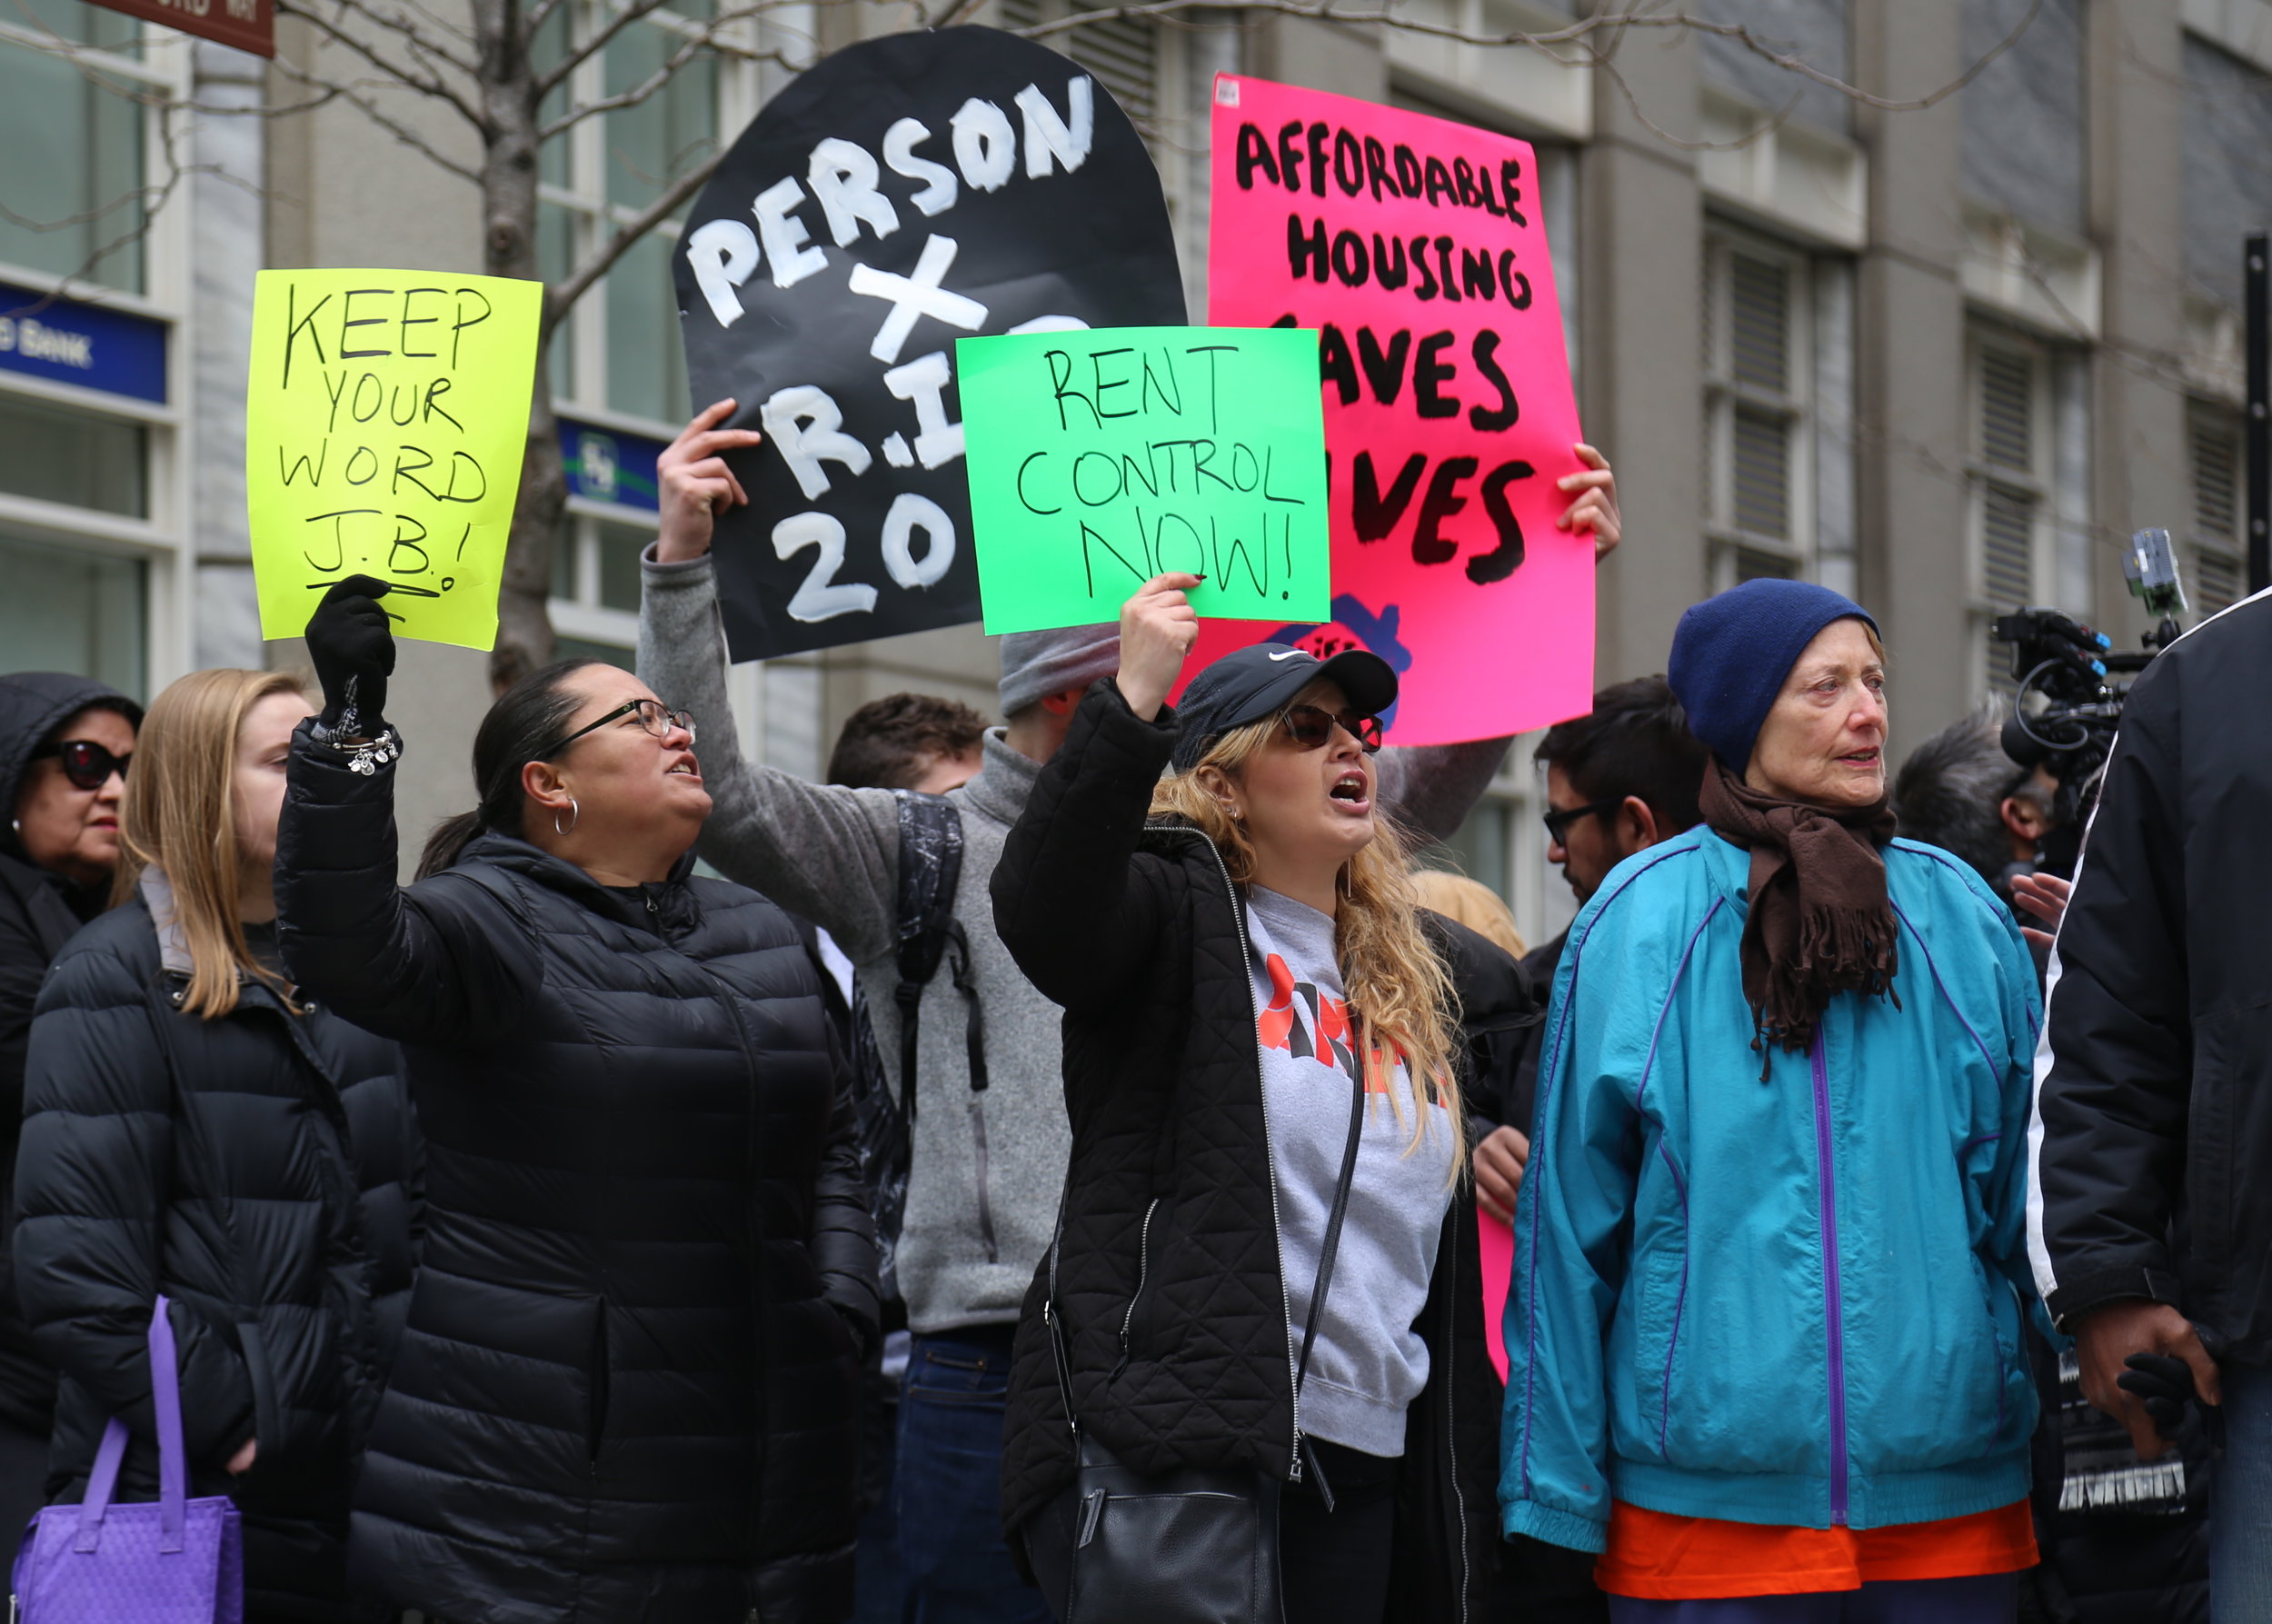 Outside the James R. Thompson Center, demonstrators raise signs in protest of Illinois' ban on rent control.